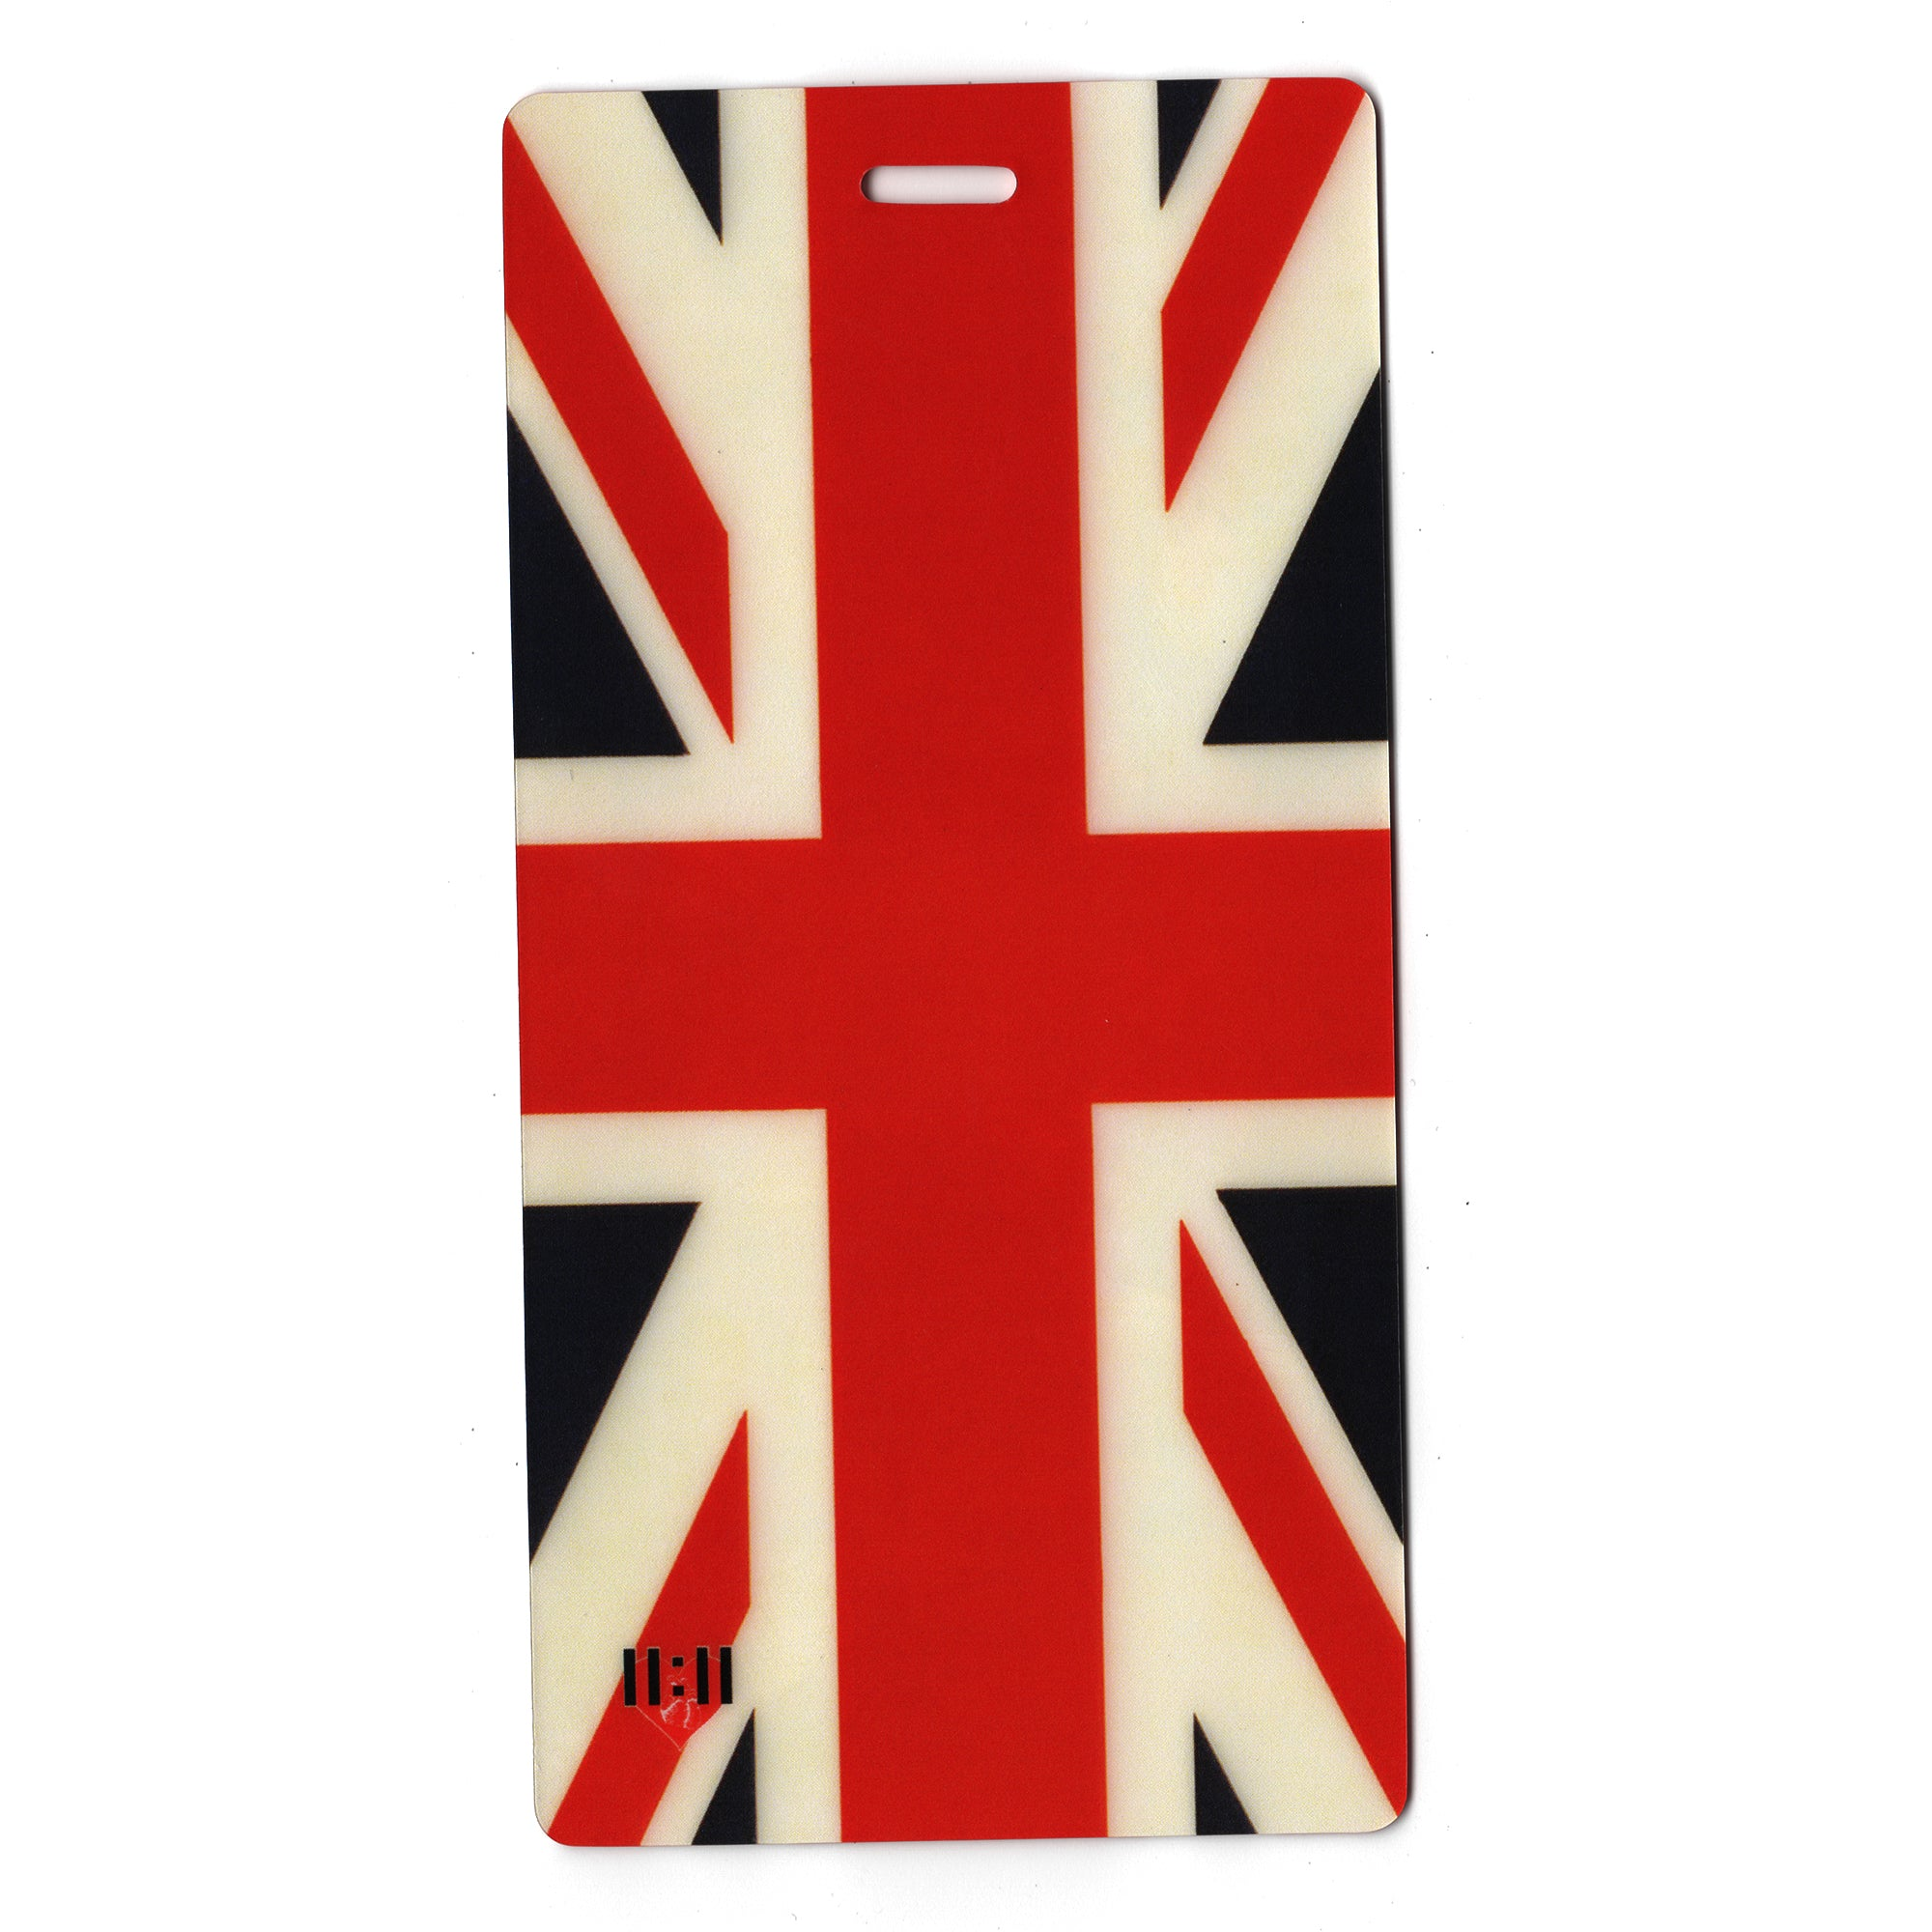 Union Jack Luggage Bag Tag Set - 2 pc, Large by 11:11 Enterprises